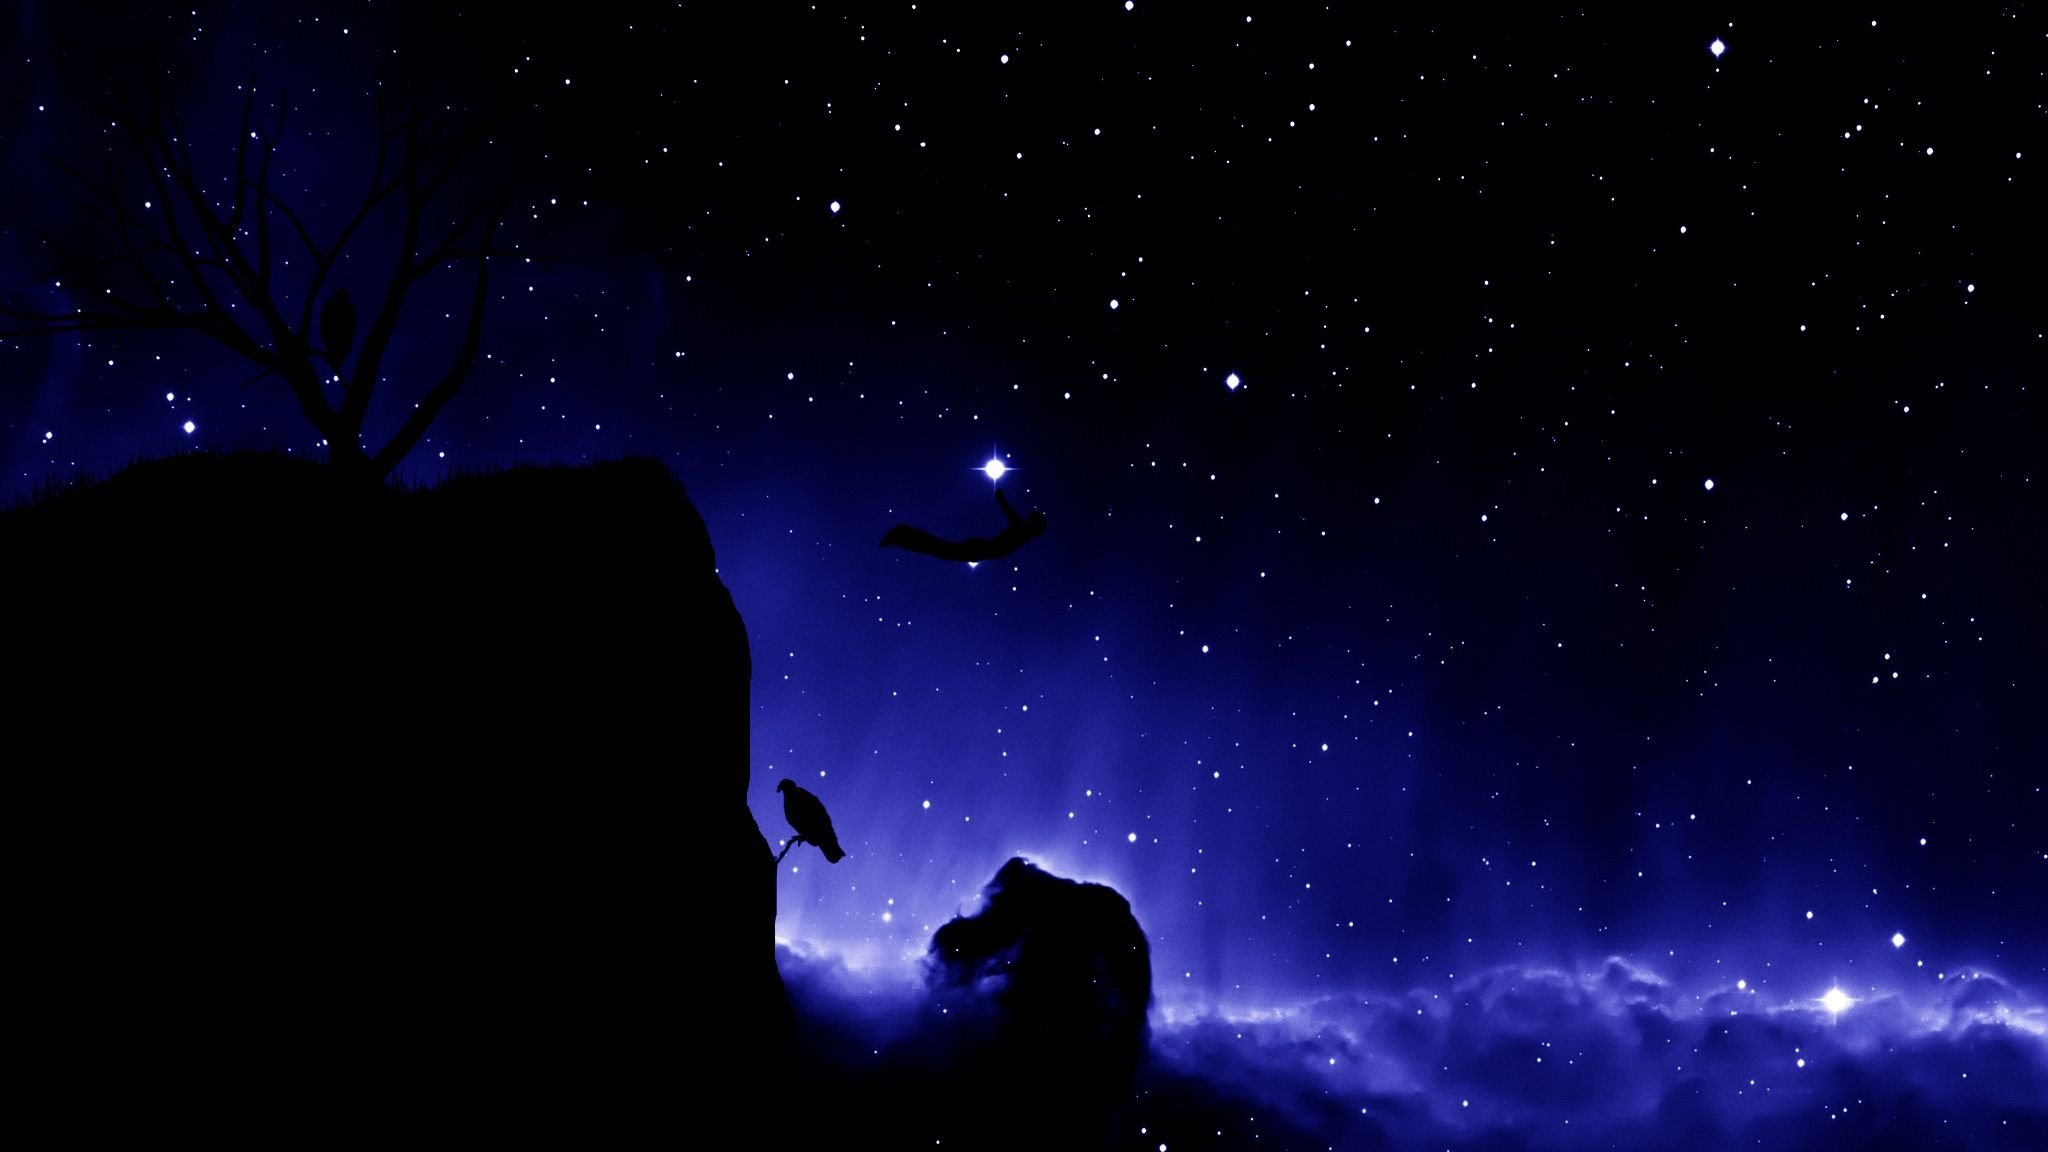 Skyscapes night sky wallpaper 2048x1152 294150 for 2048x1152 wallpaper